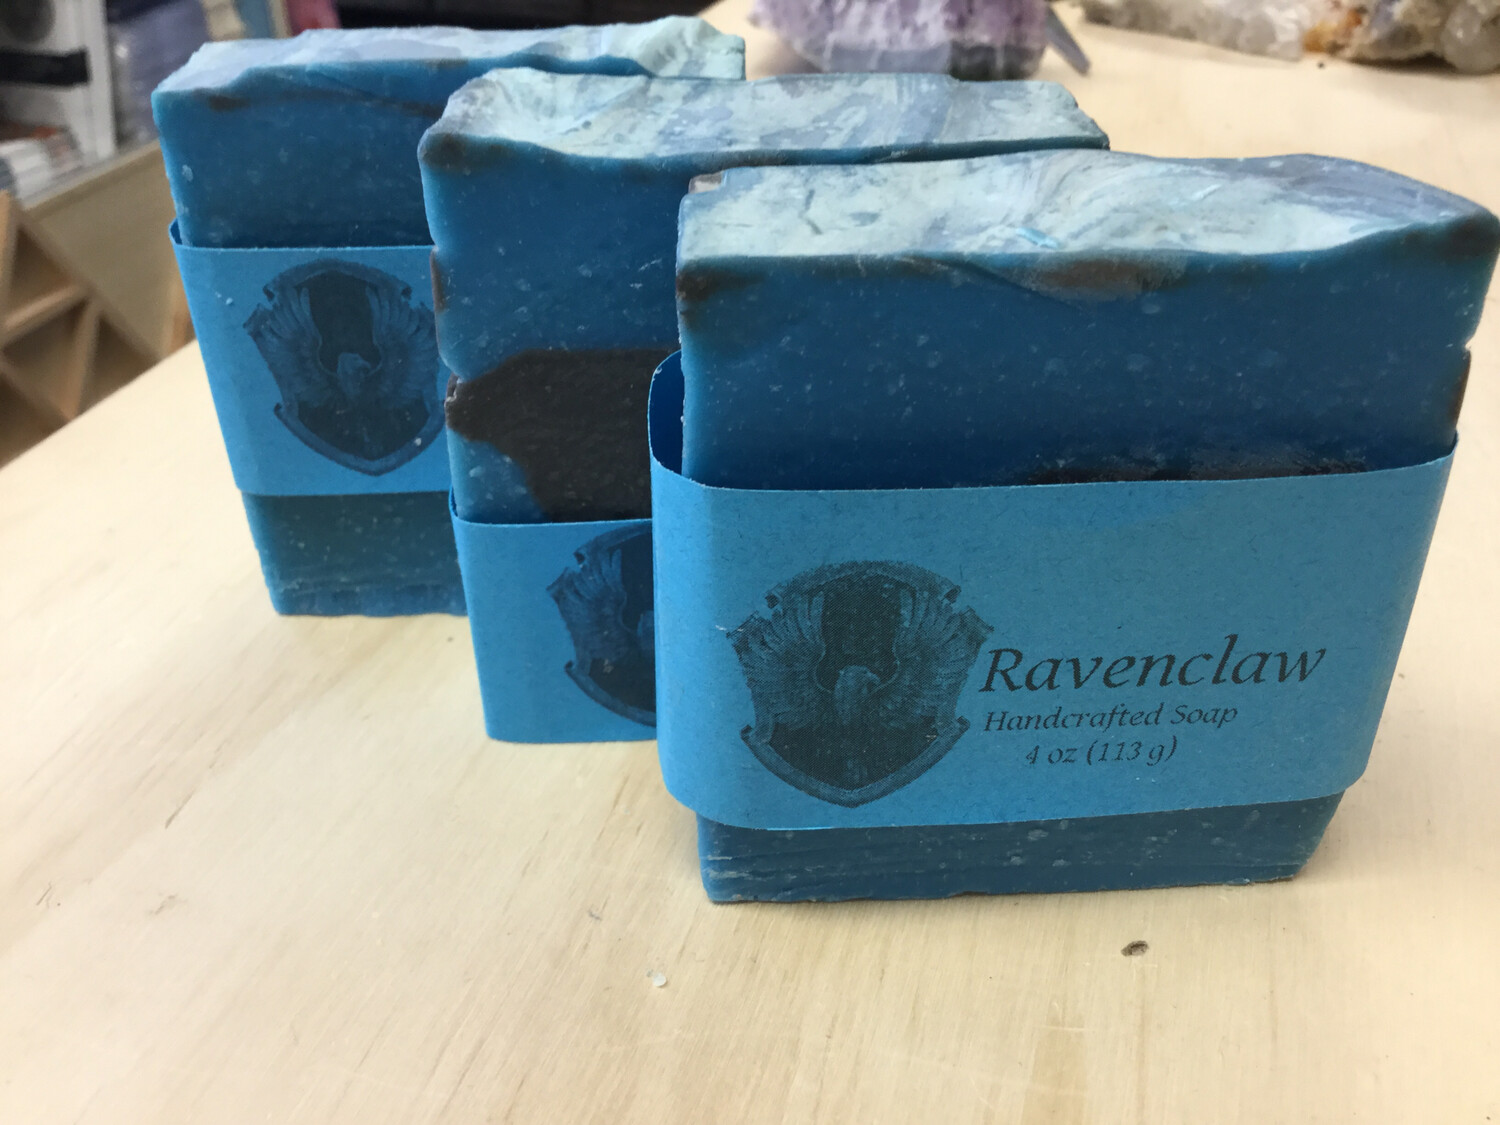 Ravenclaw Soap